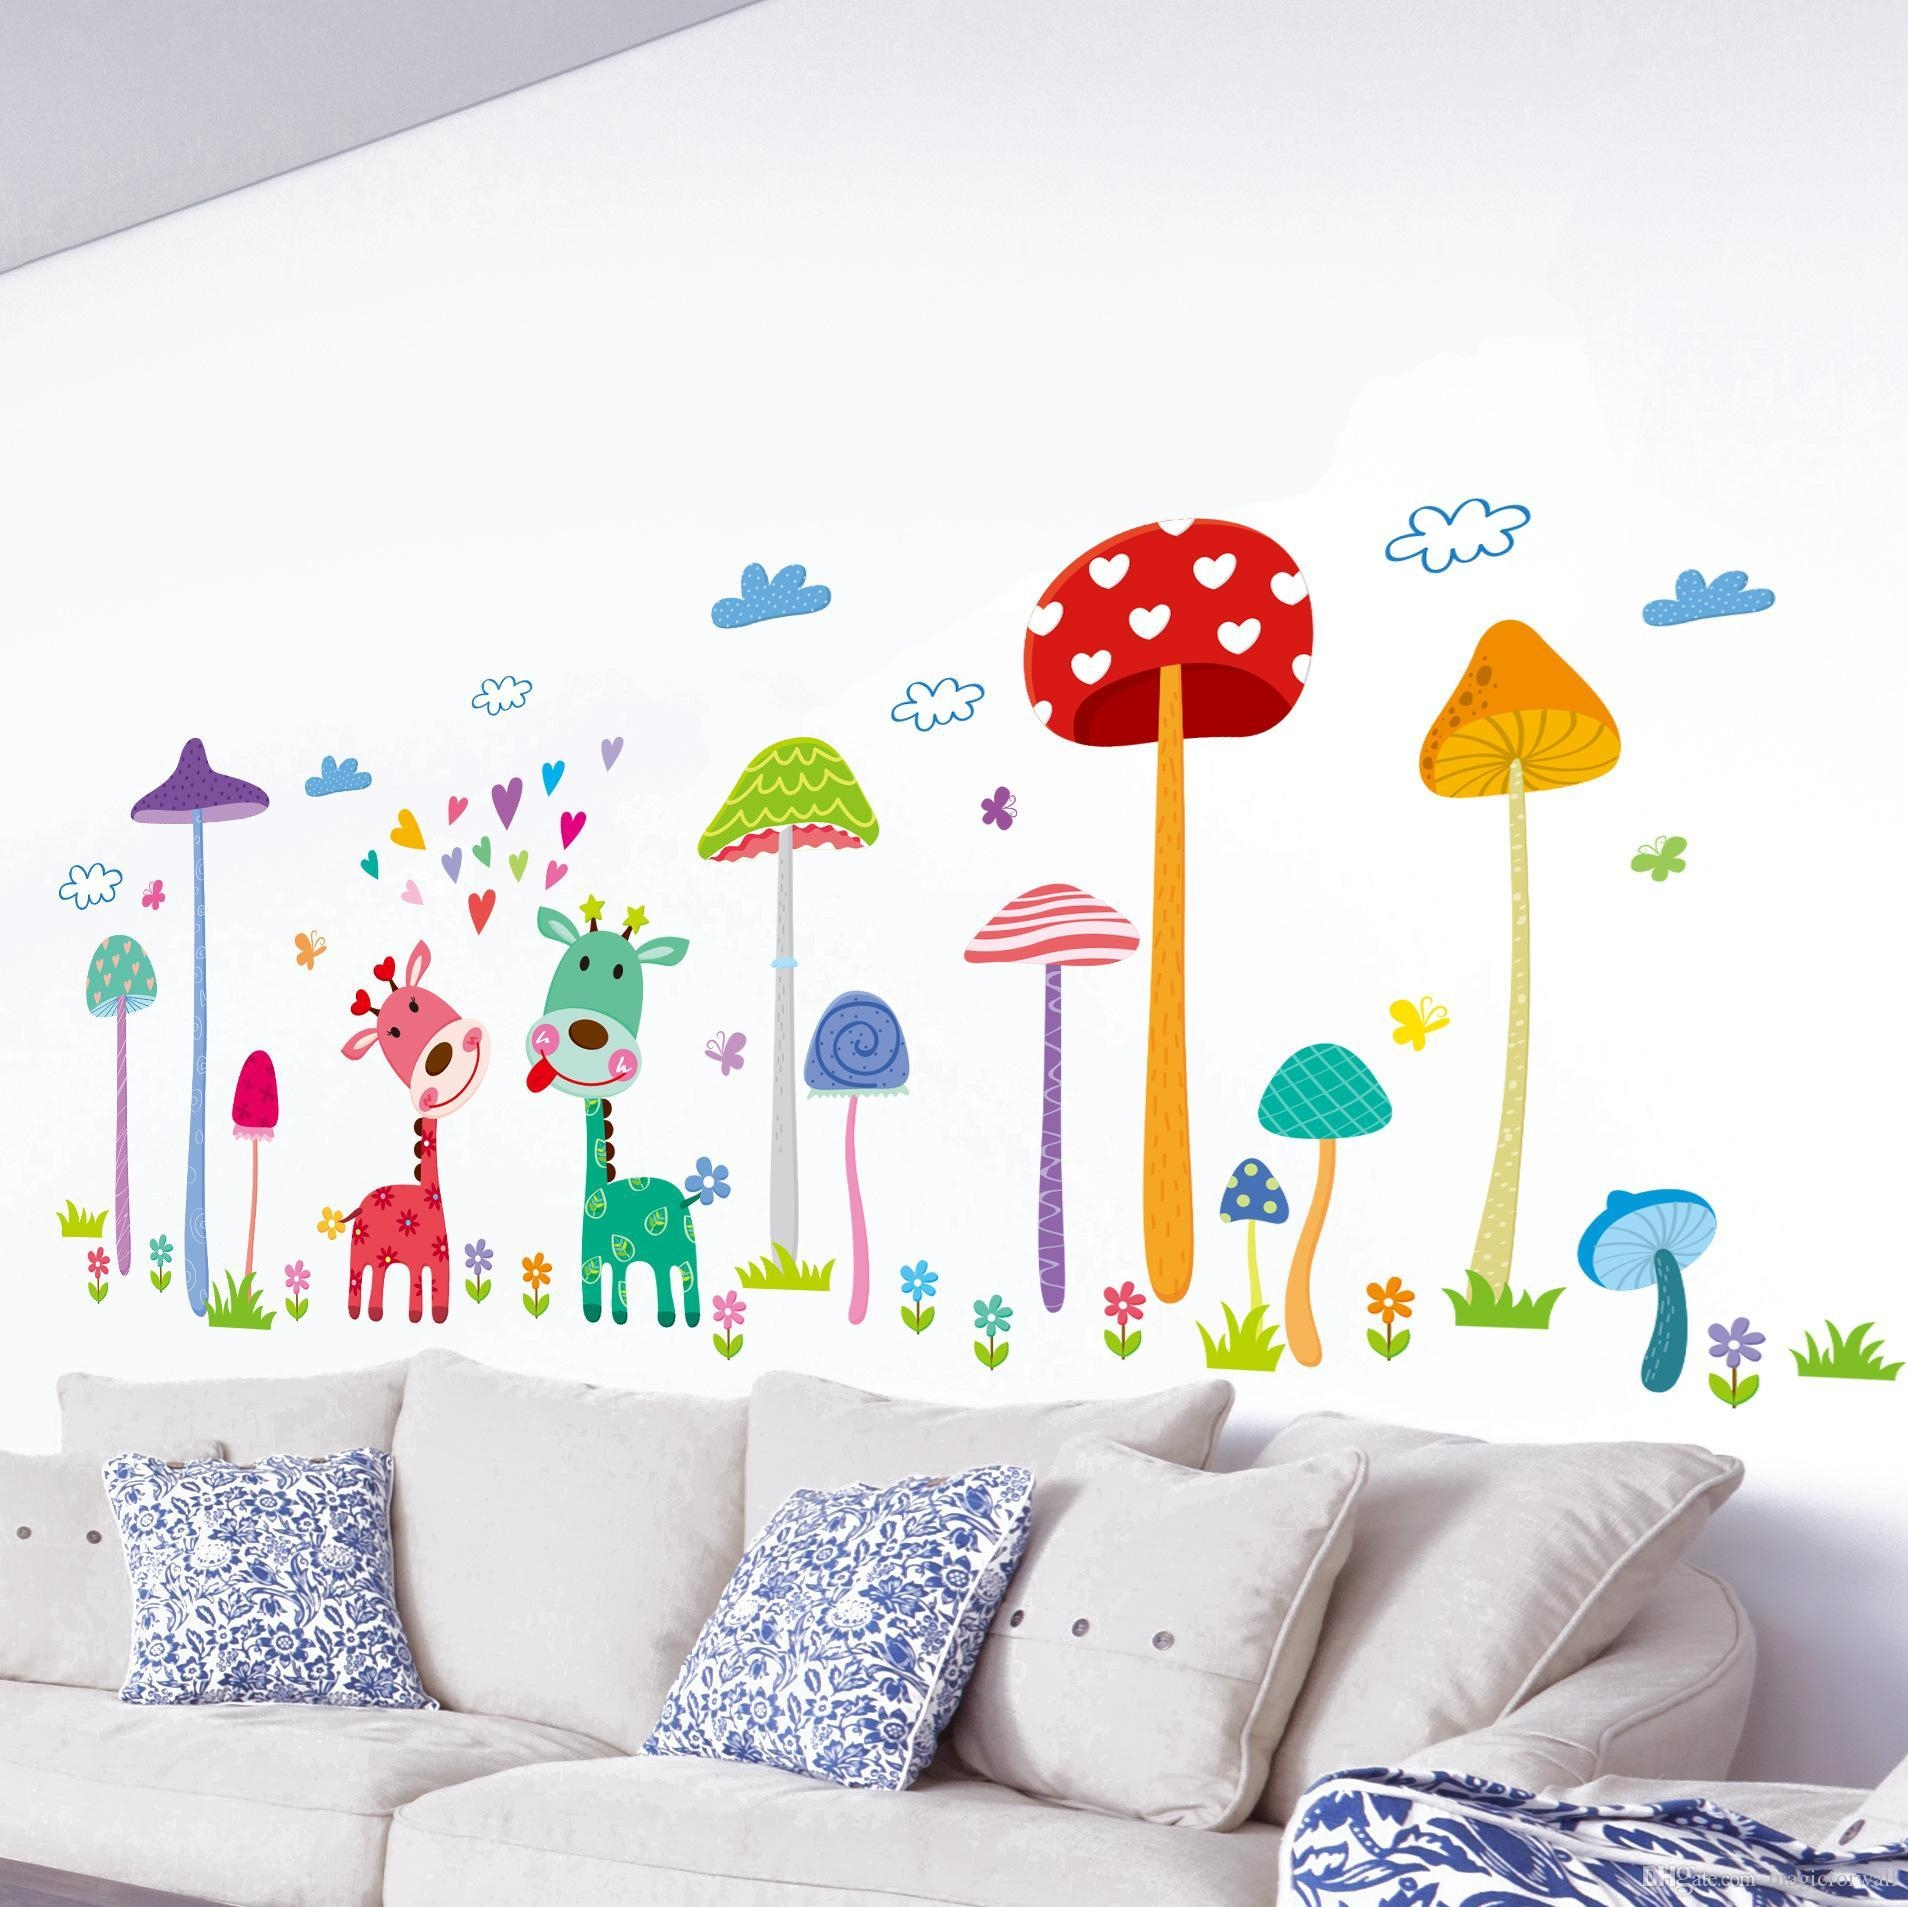 Forest Mushroom Deer Animals Home Wall Art Mural Decor Kids Babies Pertaining To Animal Wall Art (Image 12 of 20)